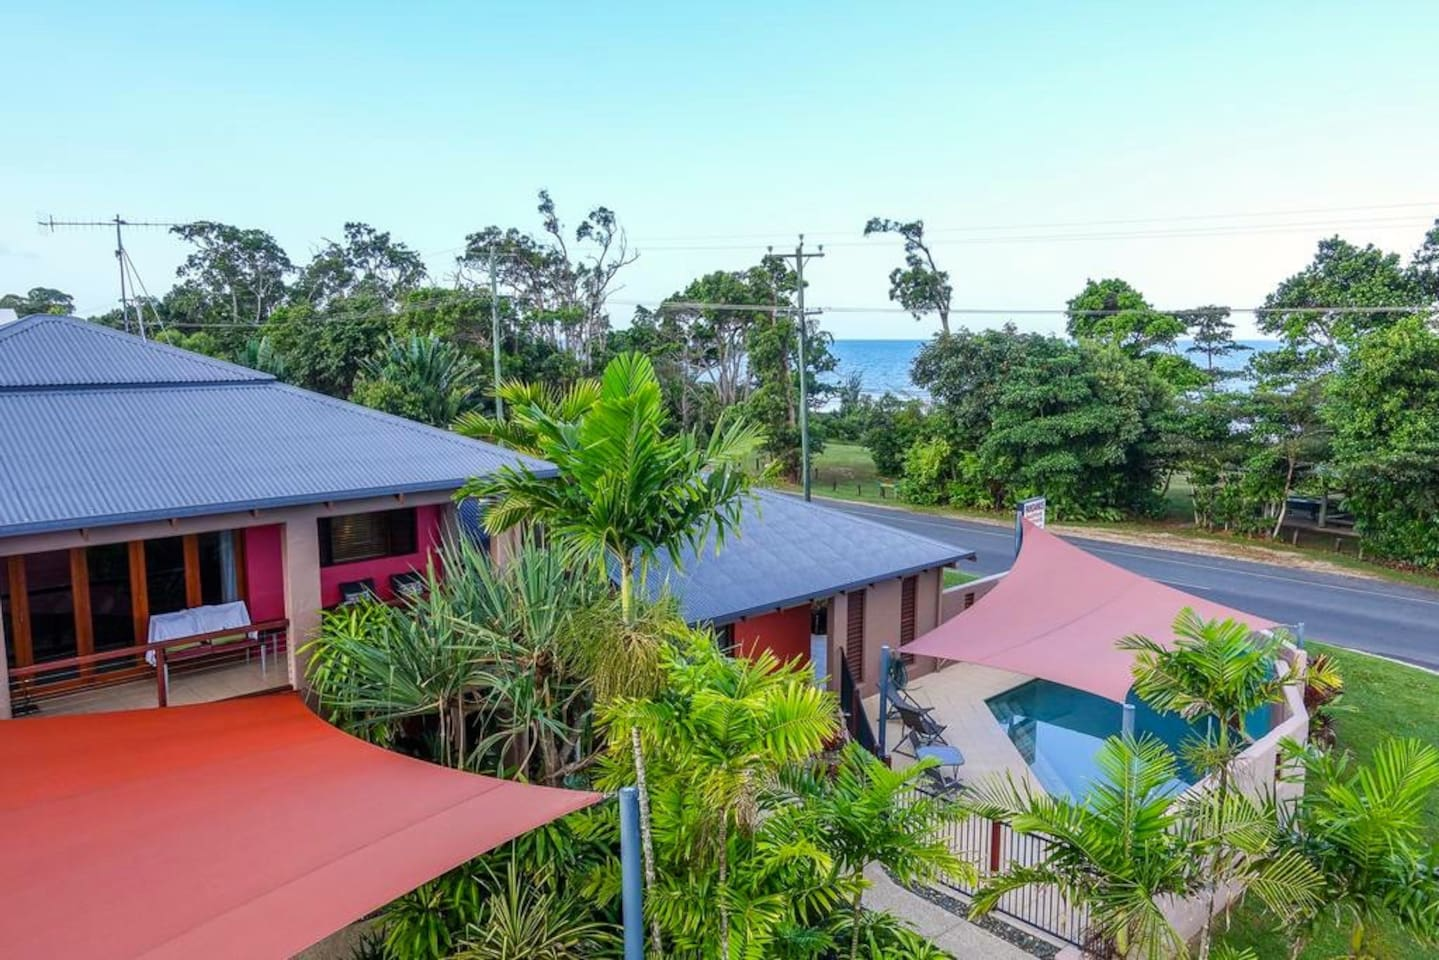 The Condominium (3 apartments) overlooking the ocean and Dunk Island.